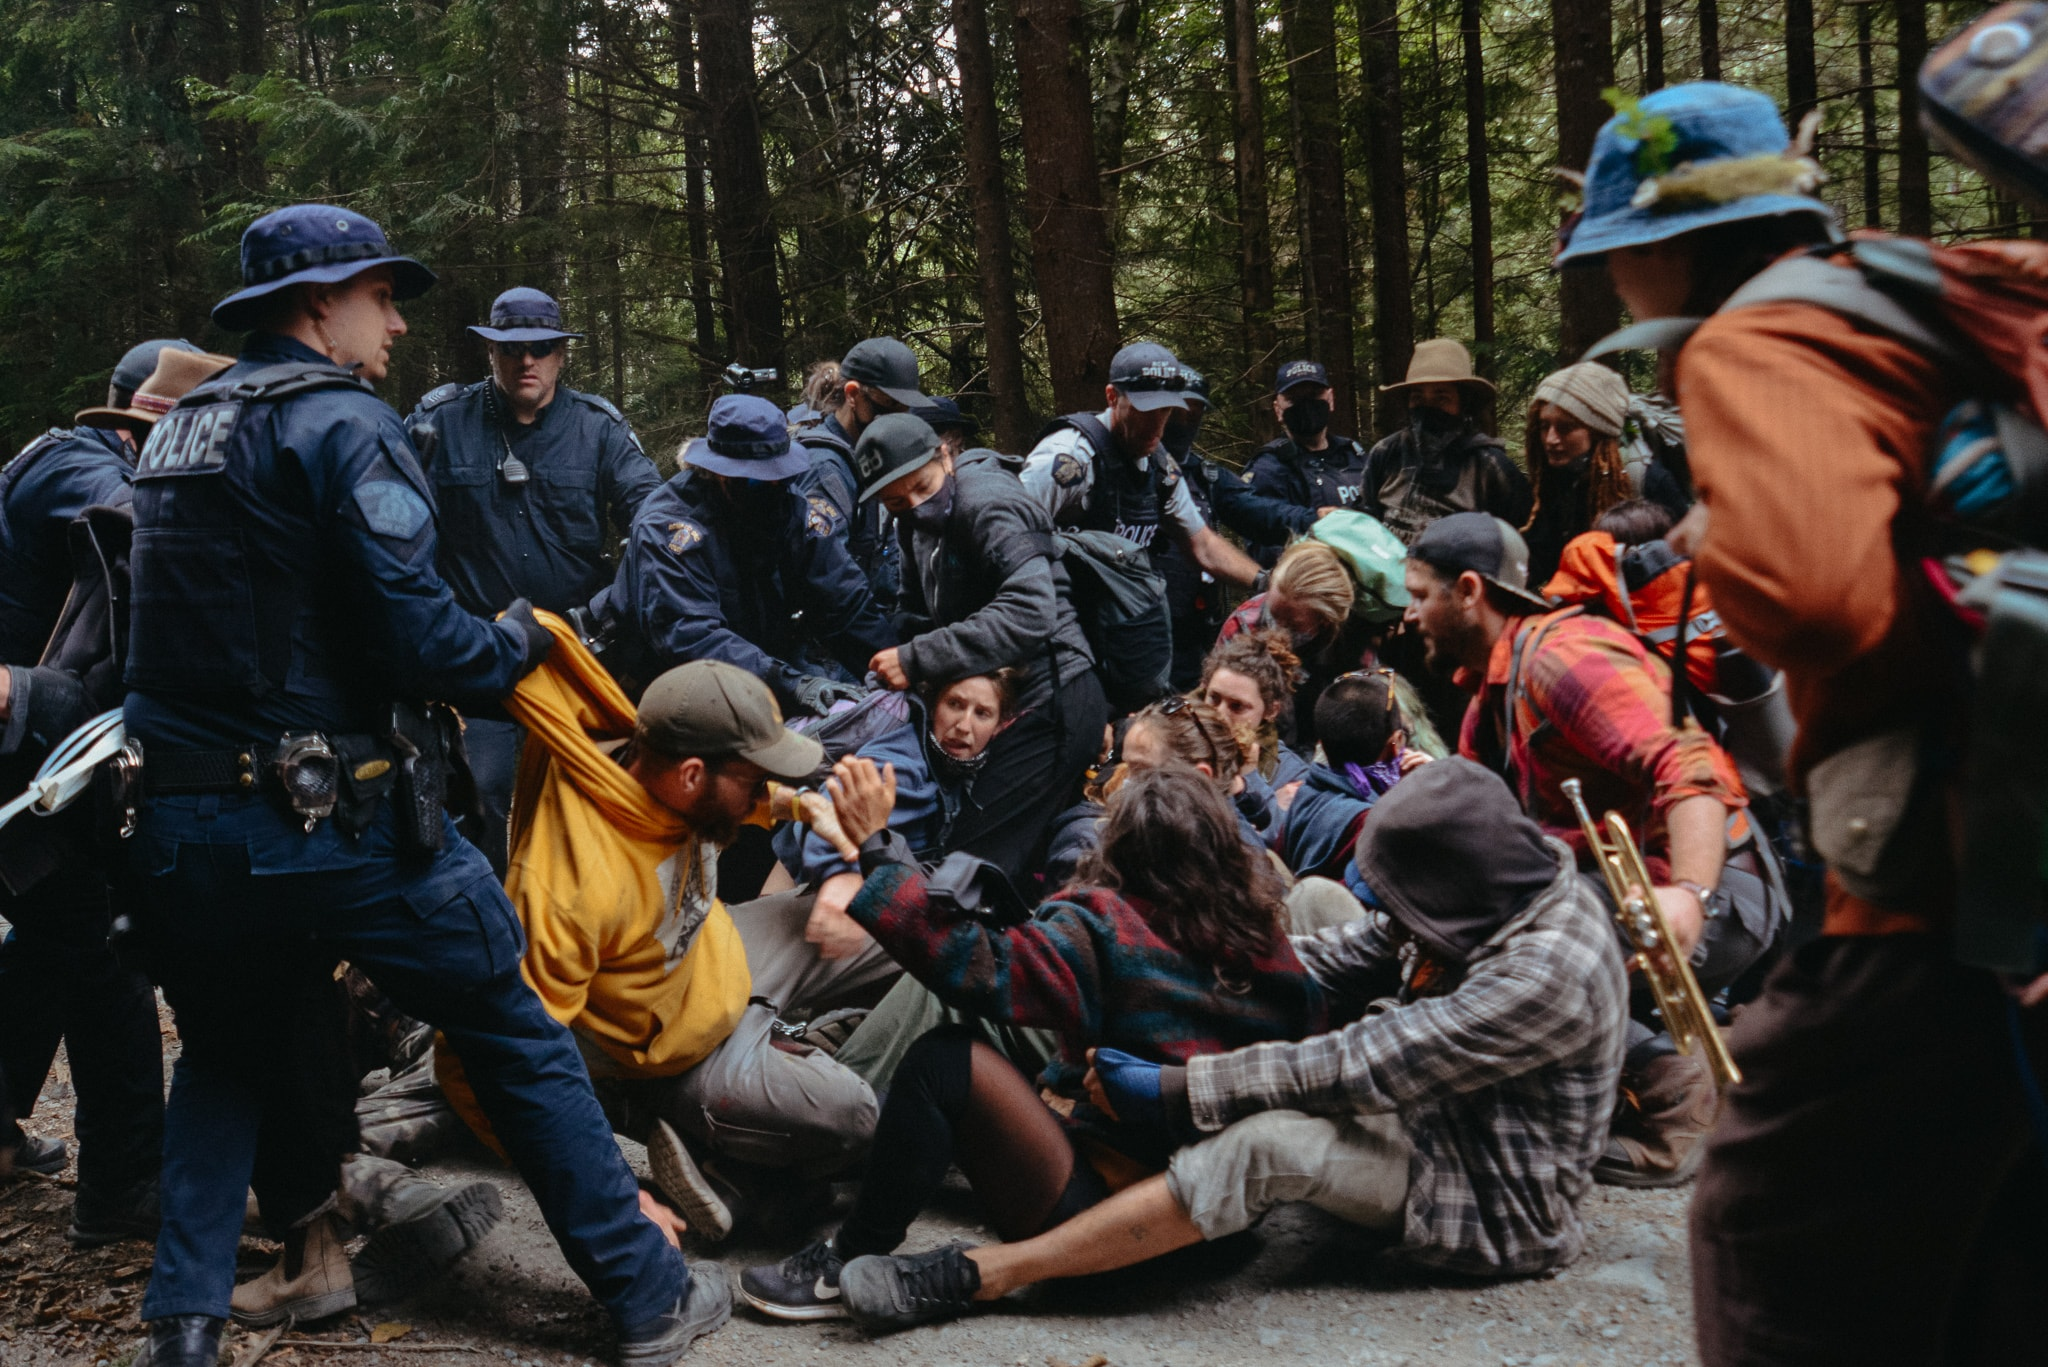 RCMP surrounding a group of protestors on the ground at Fairy Creek